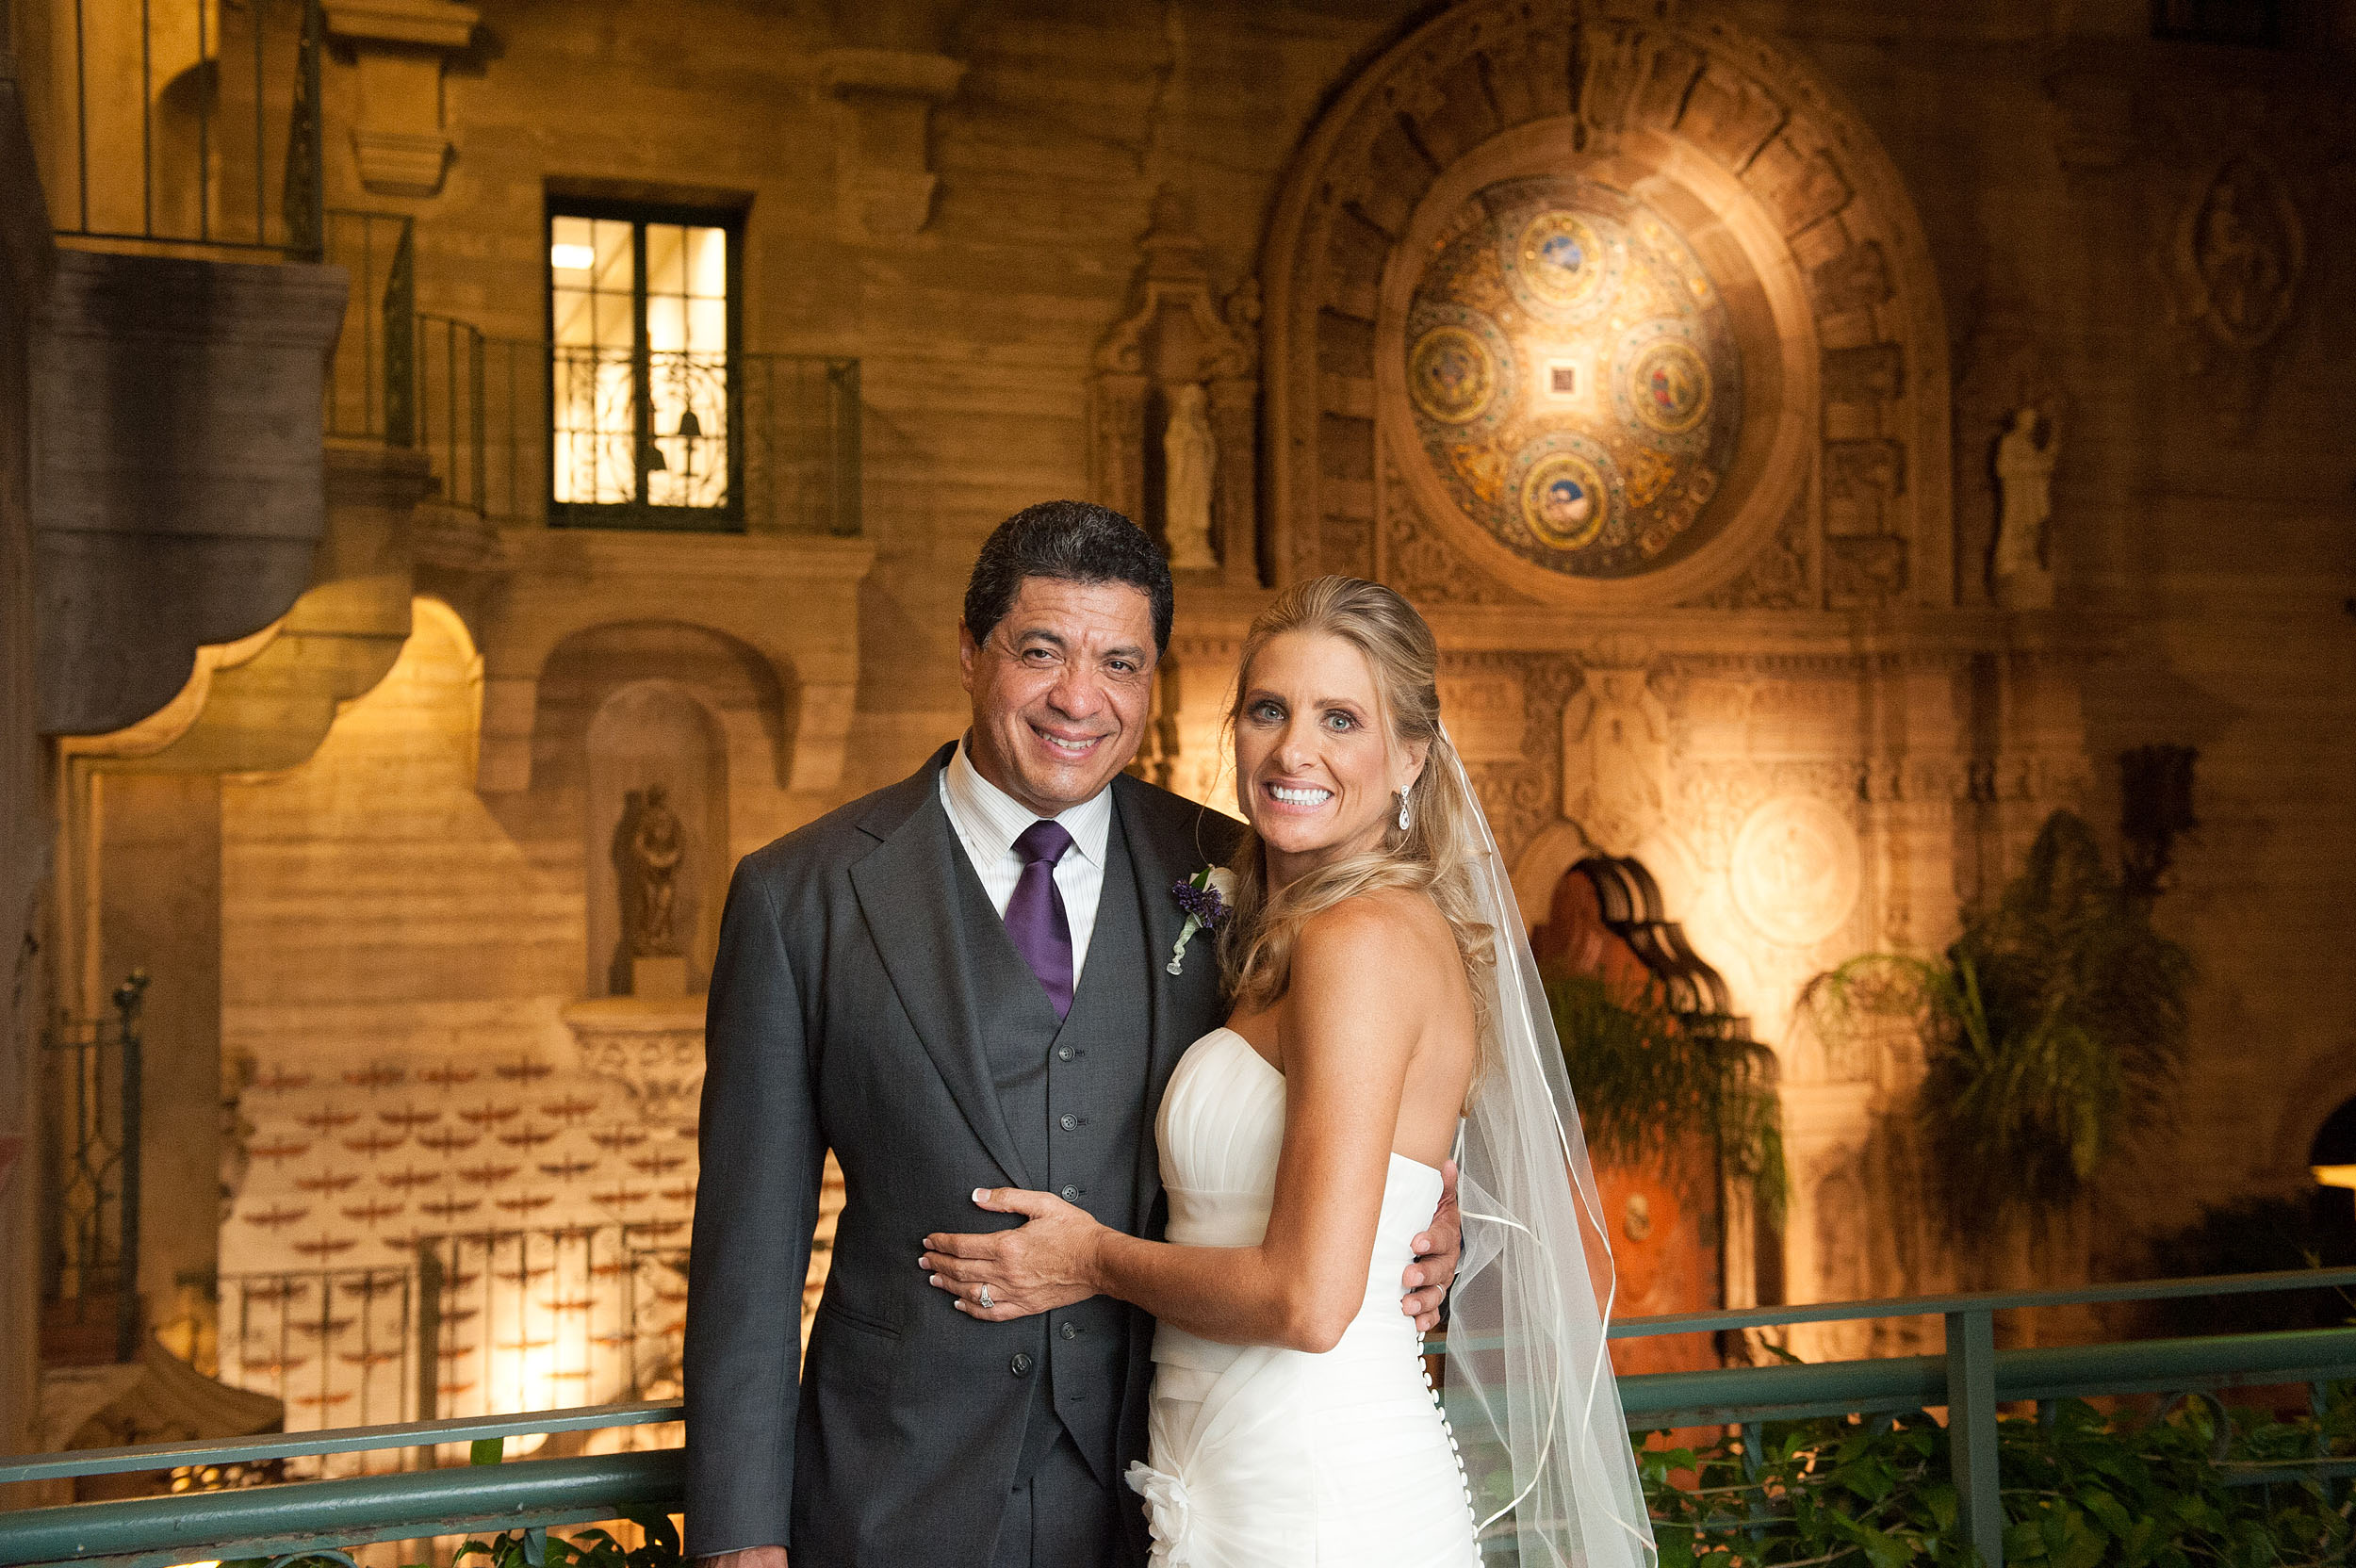 Bride and groom at night at the Mission Inn Hotel & Spa in Riverside.